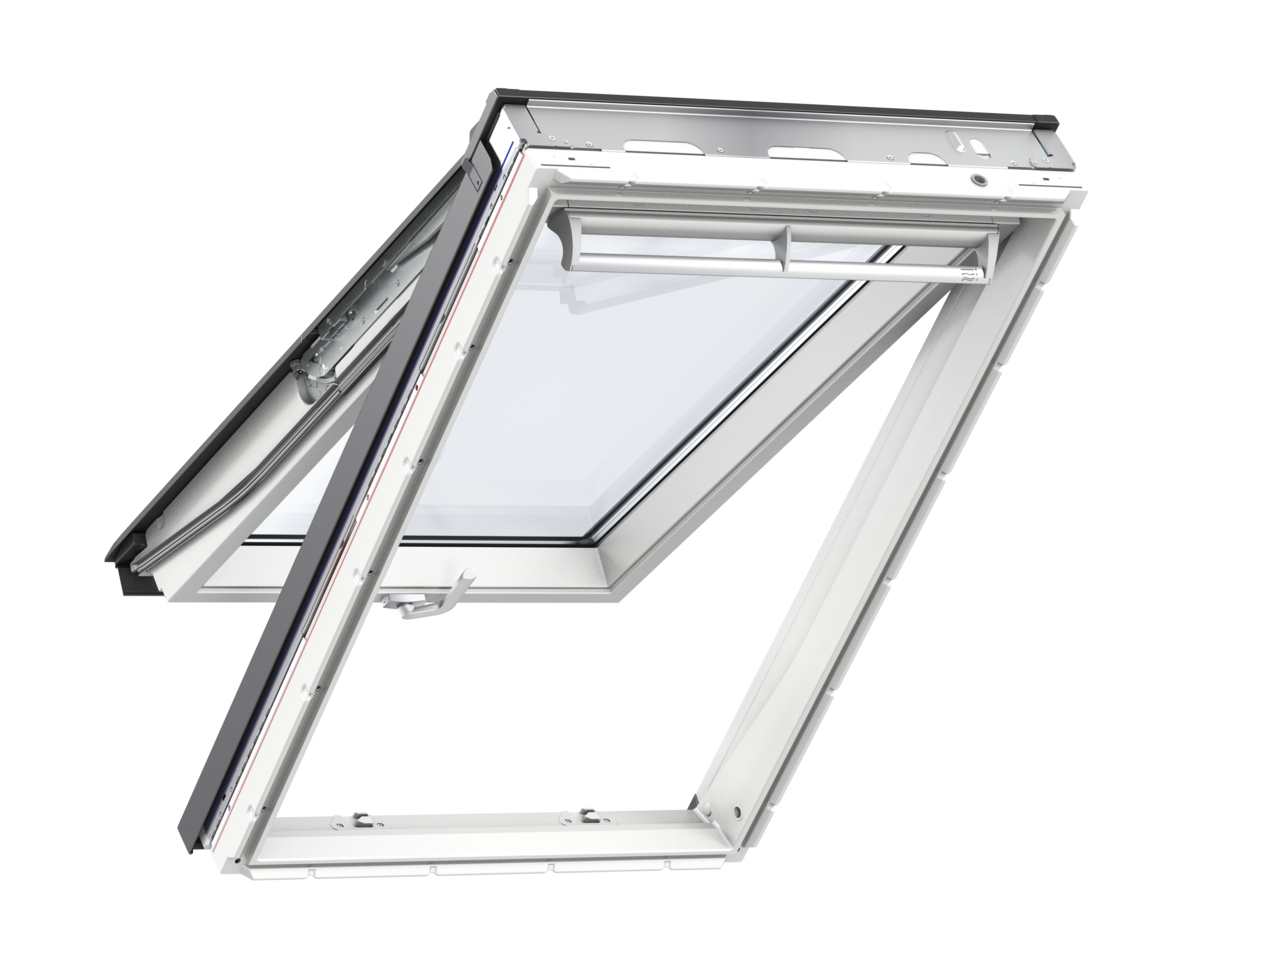 Velux GPU PK08 940 x 1400mm Top Hung 34Pane Roof Window - White Polyurethane